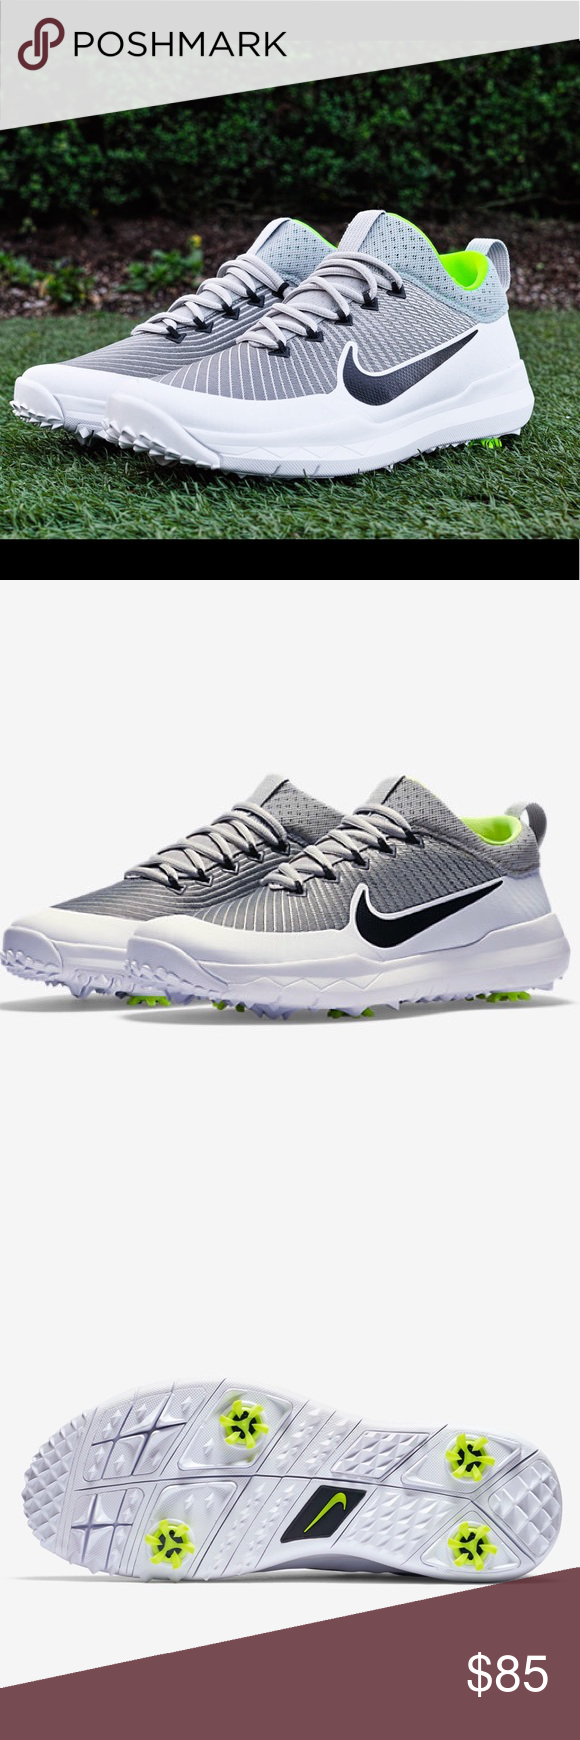 0436b09a9801 NWT Nike FI Premiere Mens Golf Shoes Please make offers! Men size 9 Gray  and White Original price  200 Brand new never worn!    Sizes 8